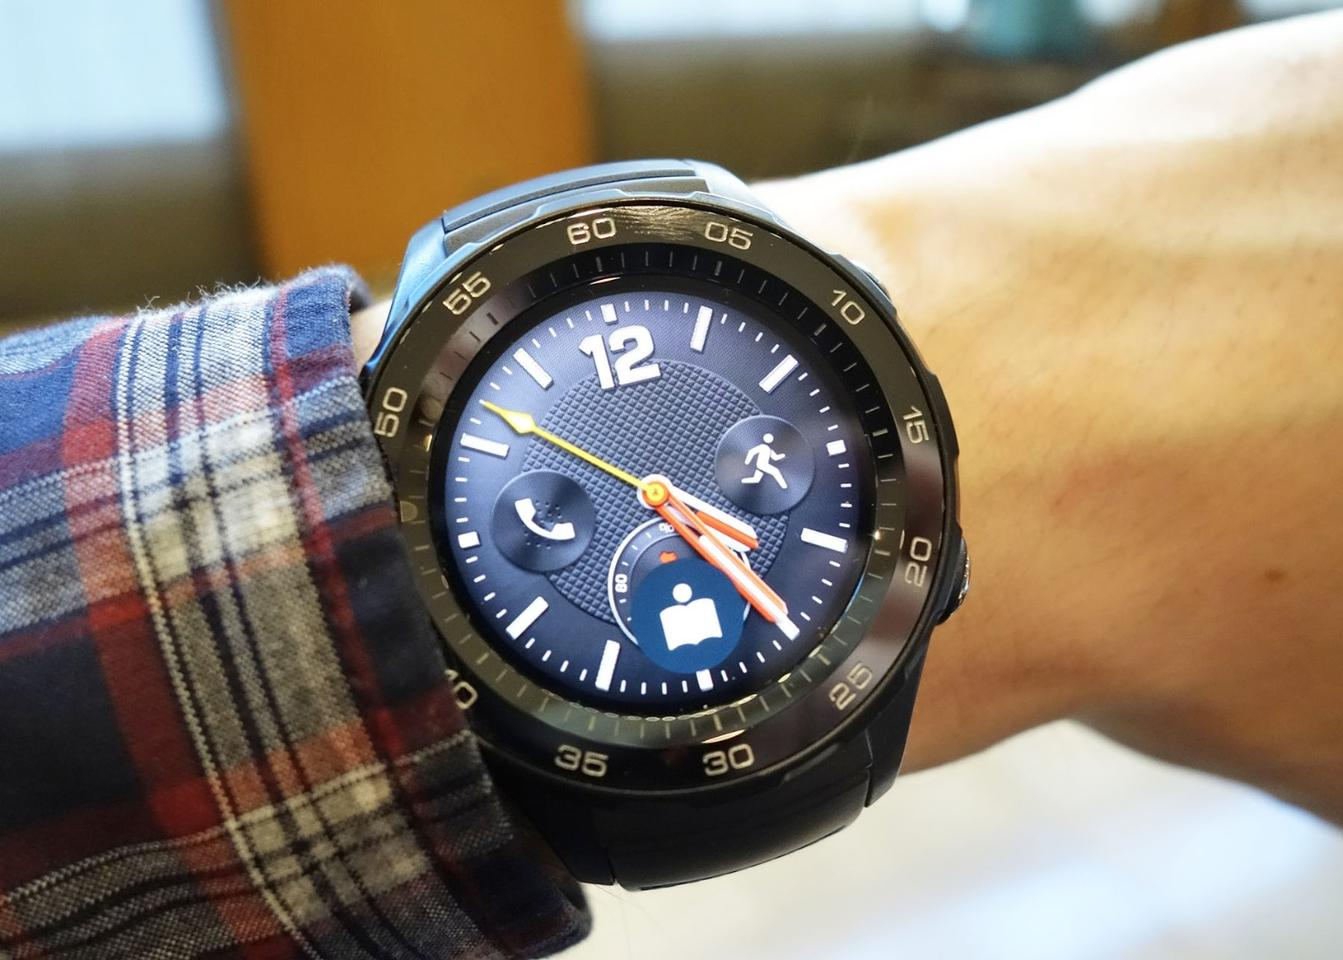 With a redesigned bezel it's sportier than its predecessor